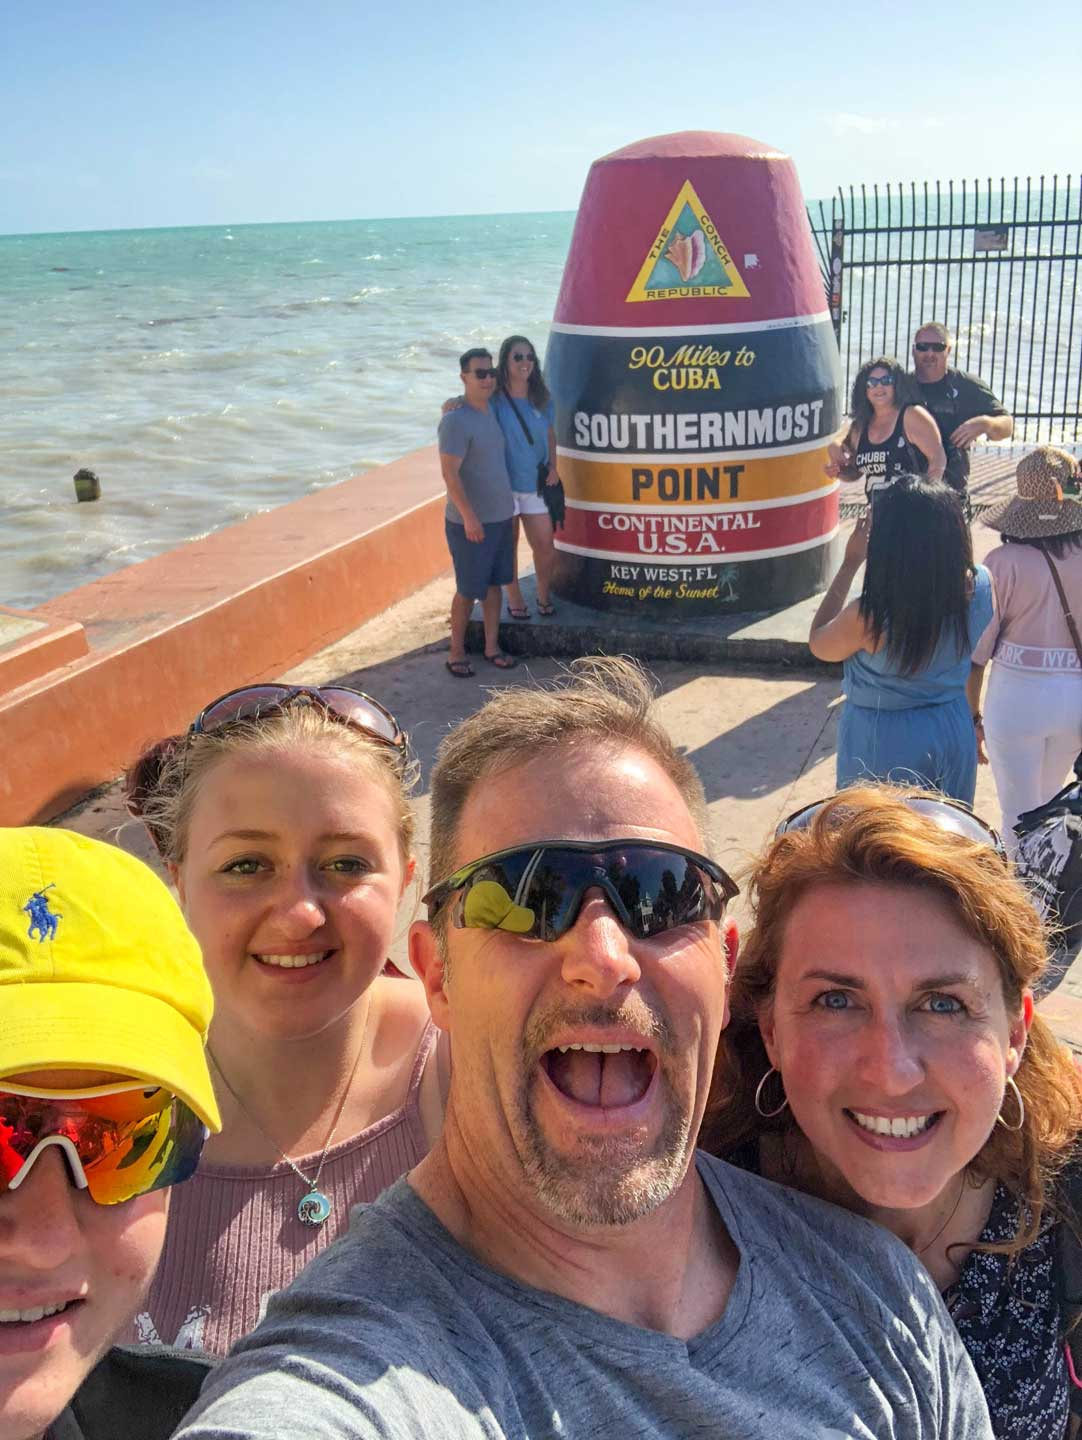 Family selfie in Key West, in front of the marker for the Southernmost Point in the Continental US.